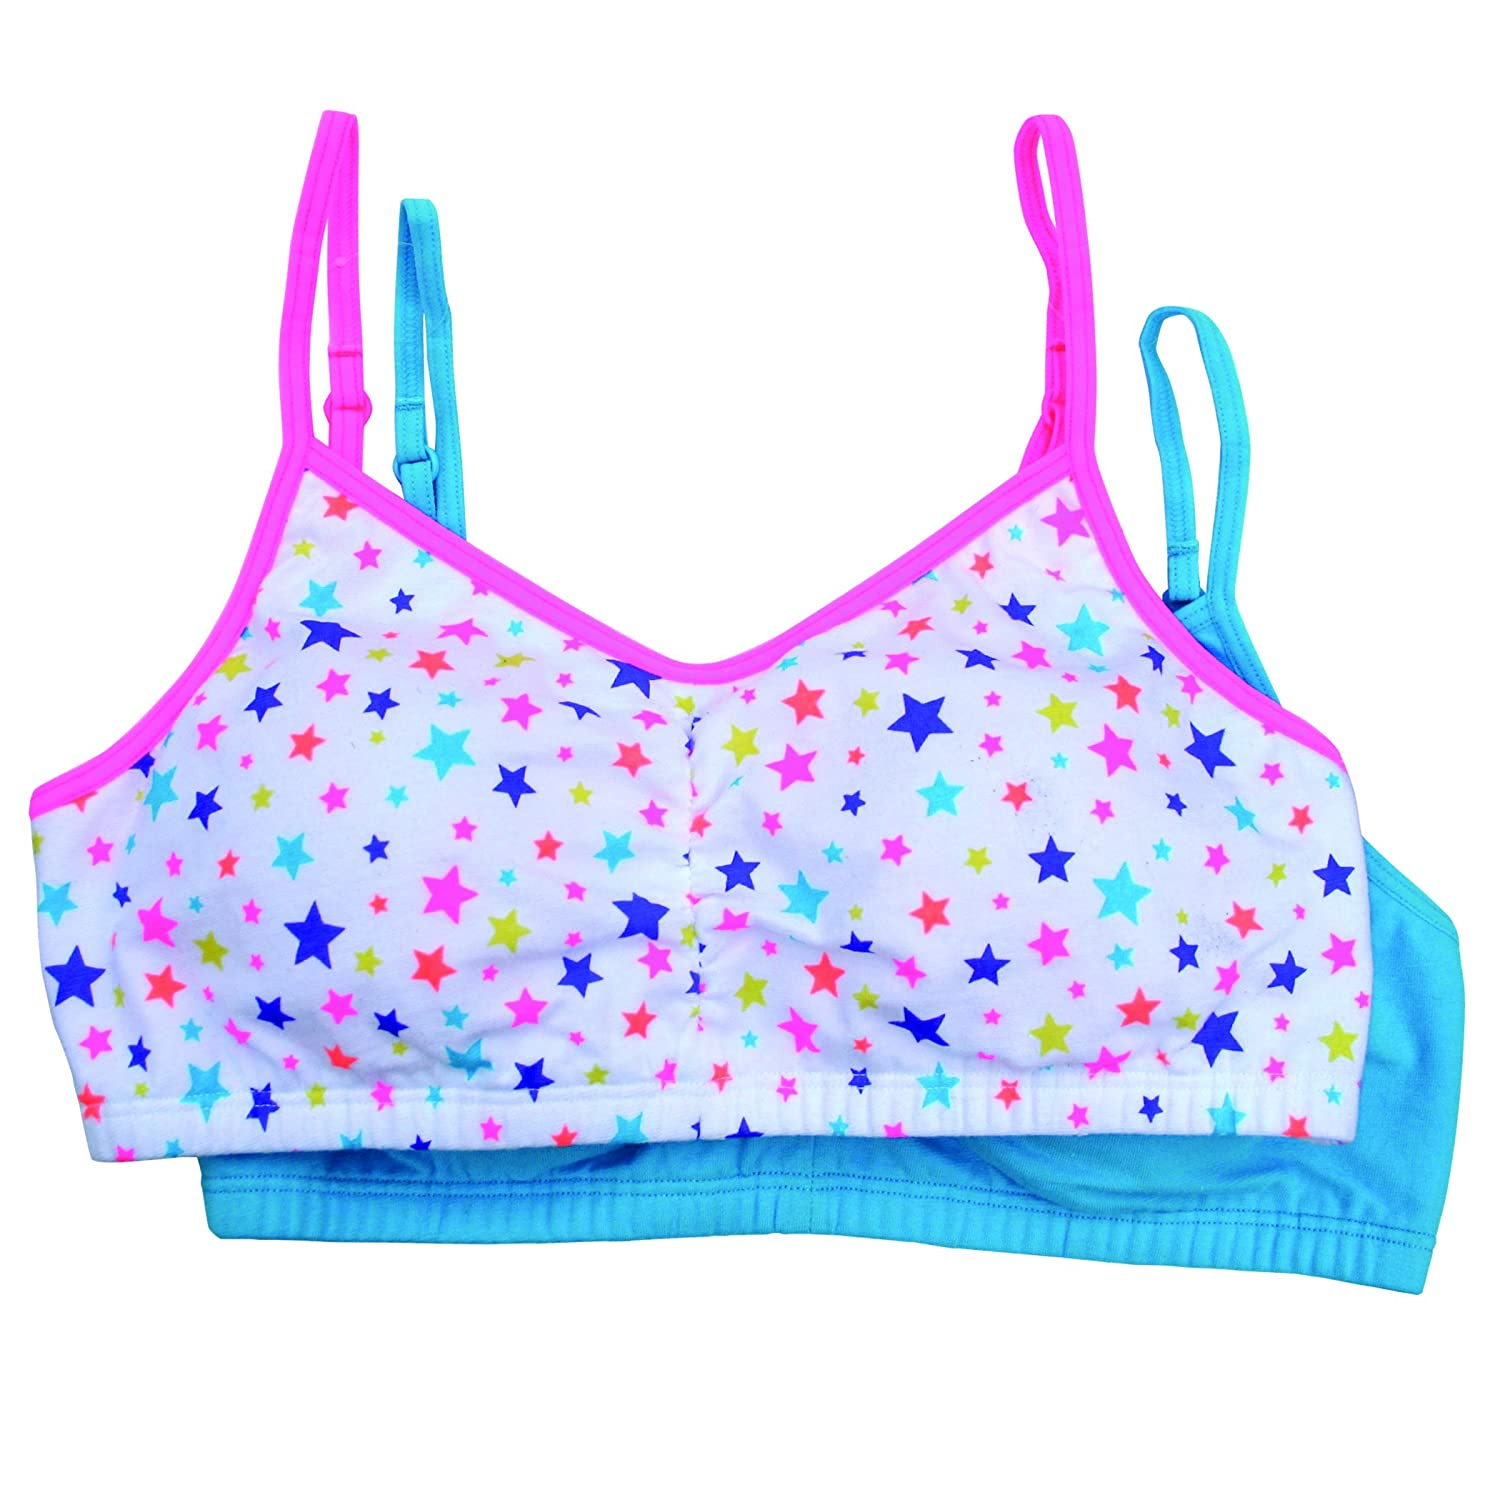 Fruit of the Loom Big Girls' Cotton Bralette ()(Pack of 2) 94046